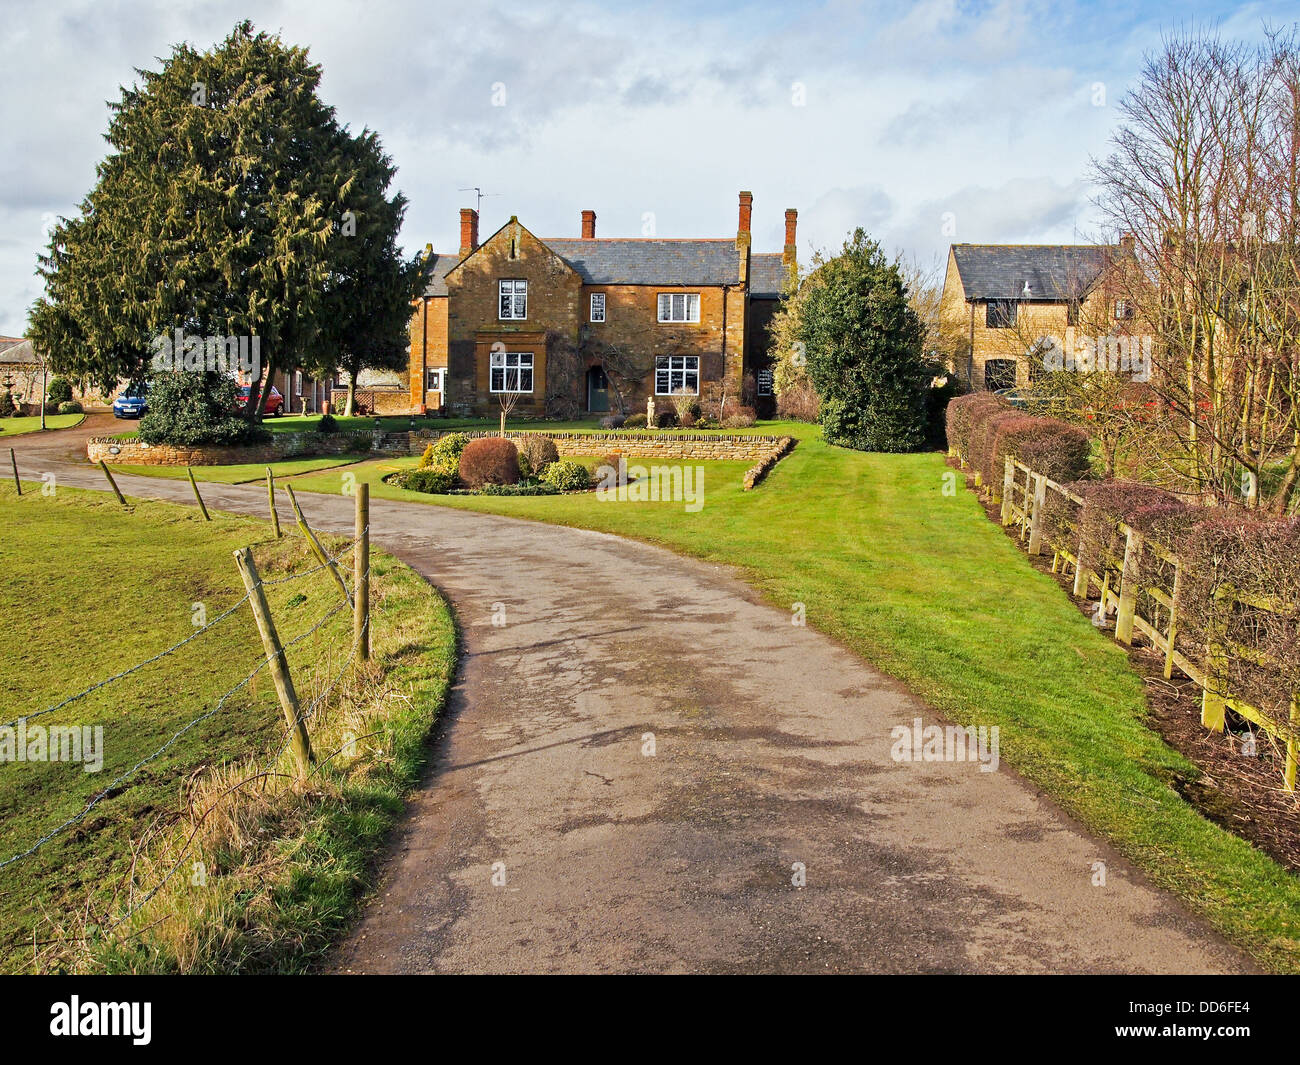 Country House in country lane - Stock Image